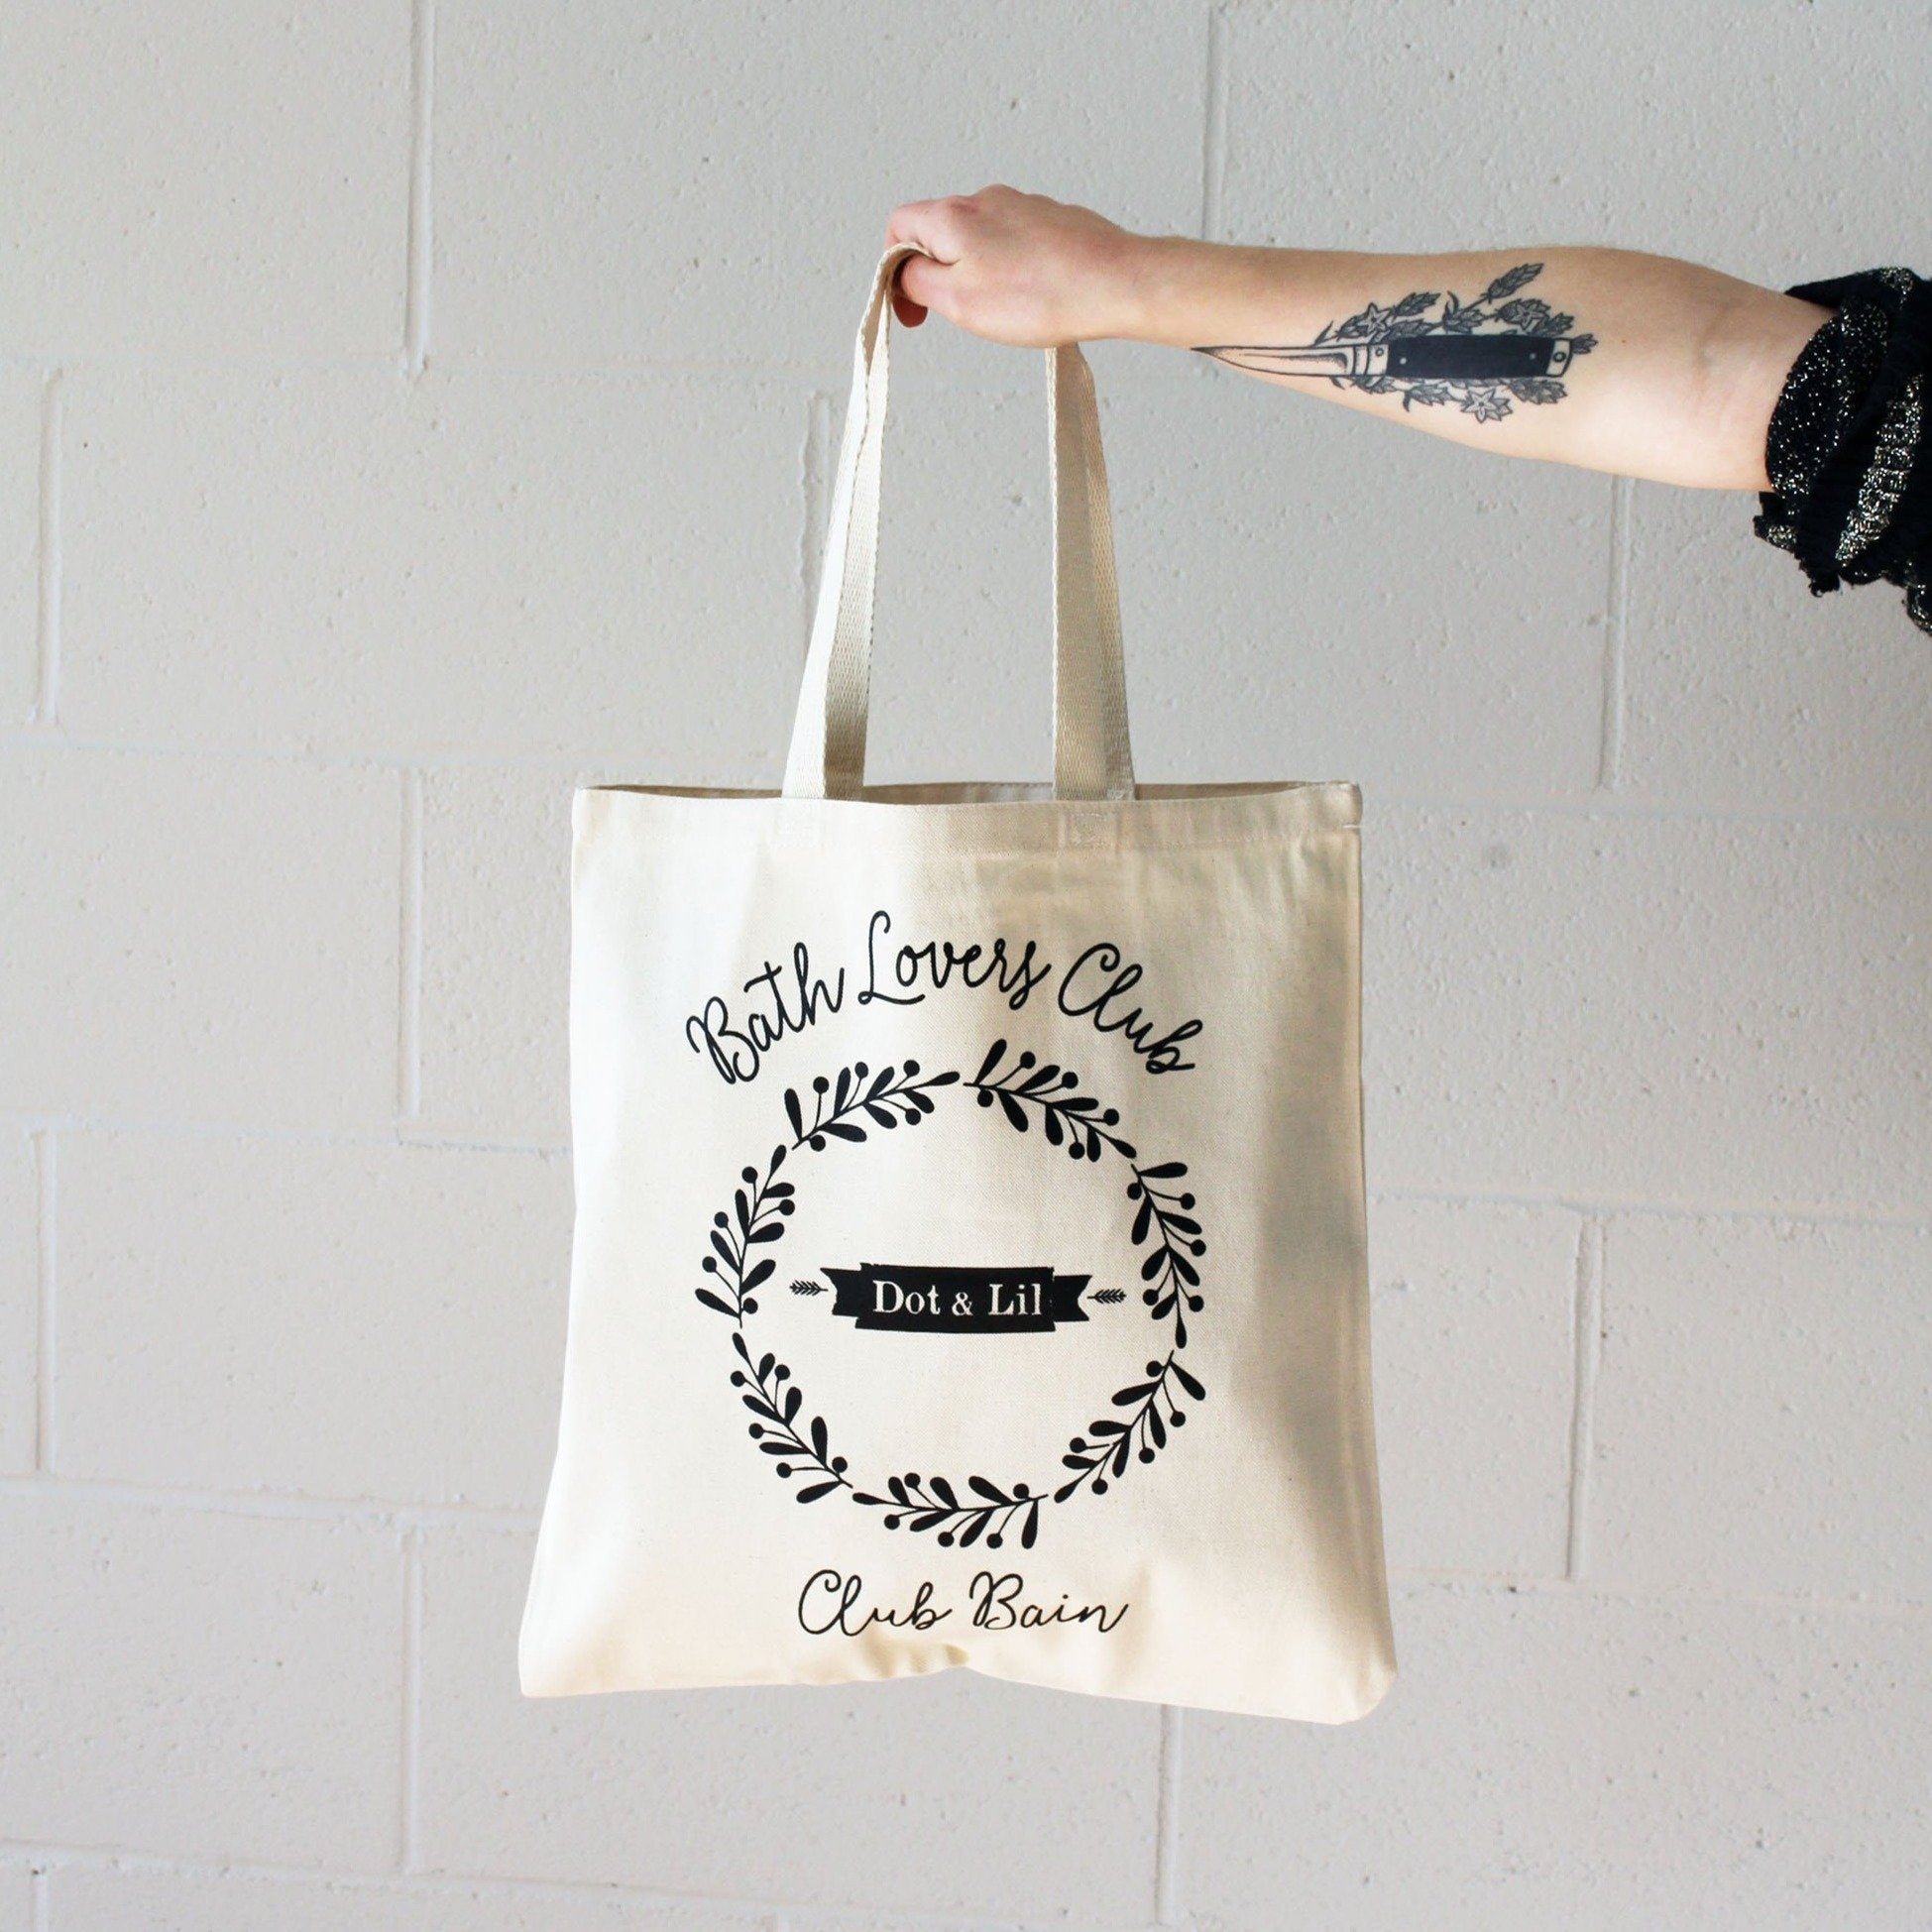 Dot & Lil tote bag